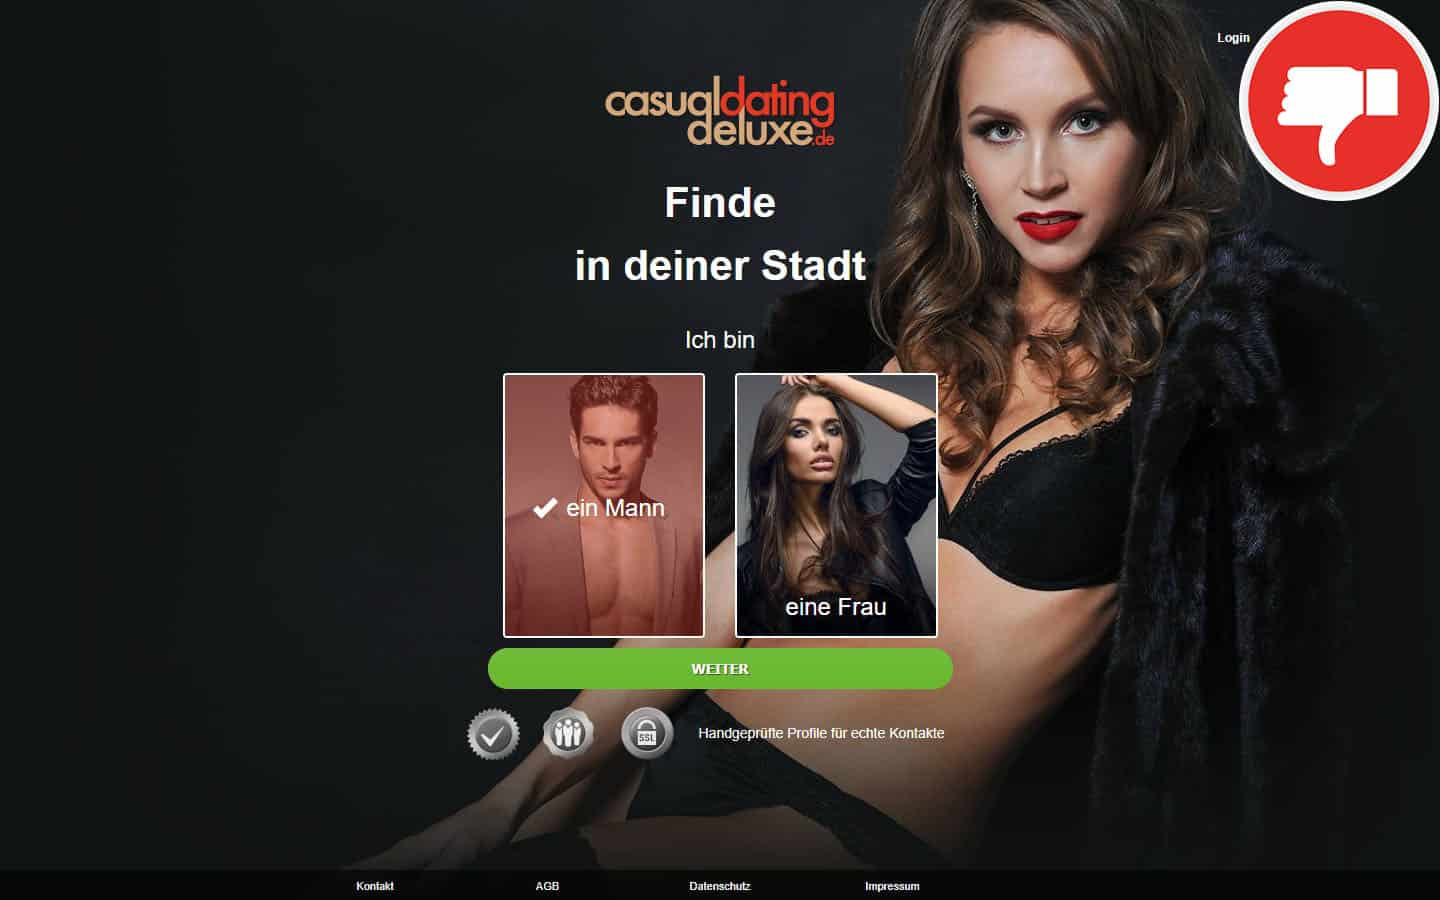 Casual dating gute seiten